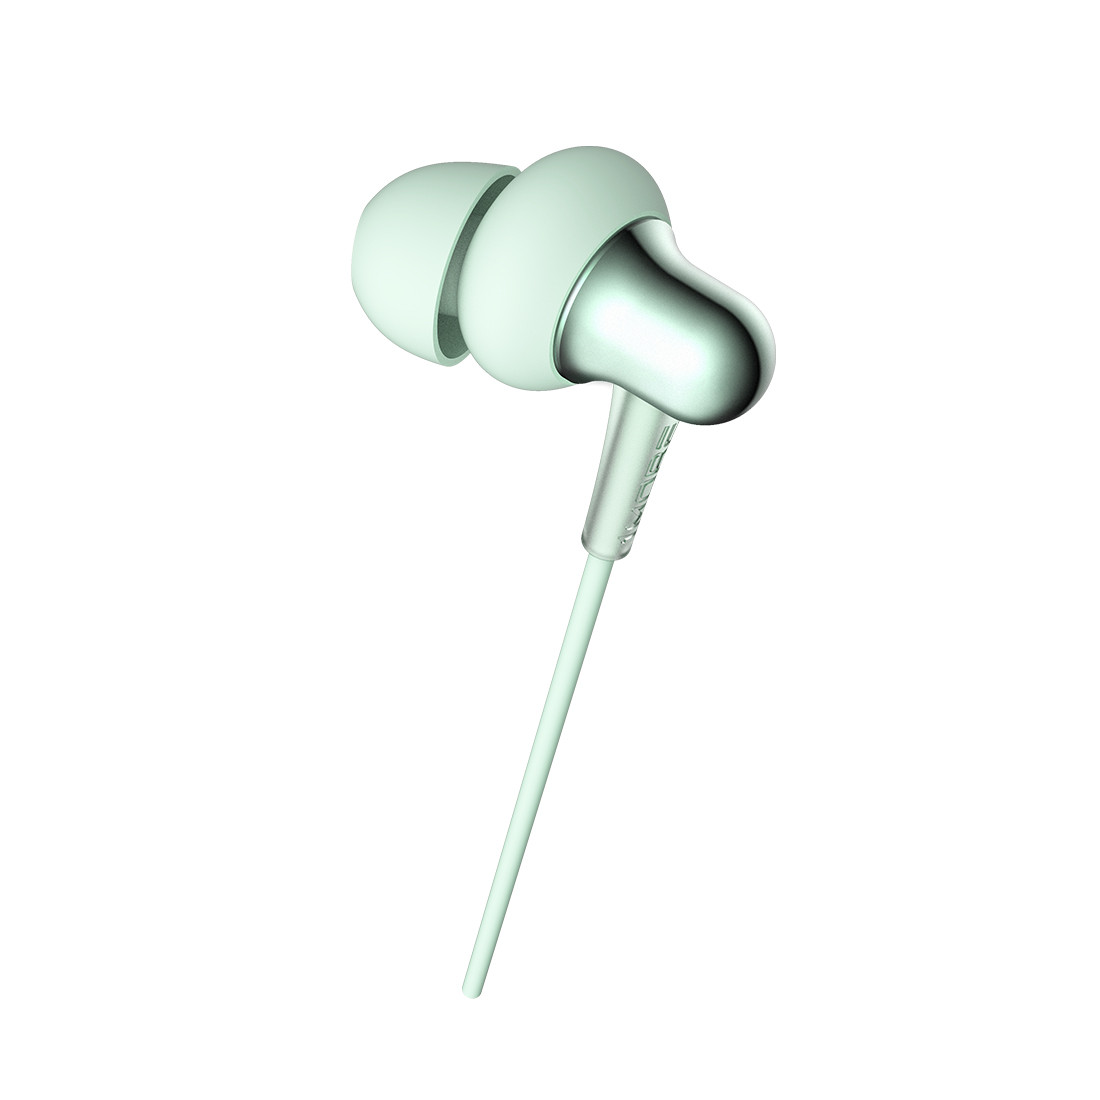 Наушники 1More Stylish Dual-dynamic Driver In-Ear Headphones E1025 Зеленый